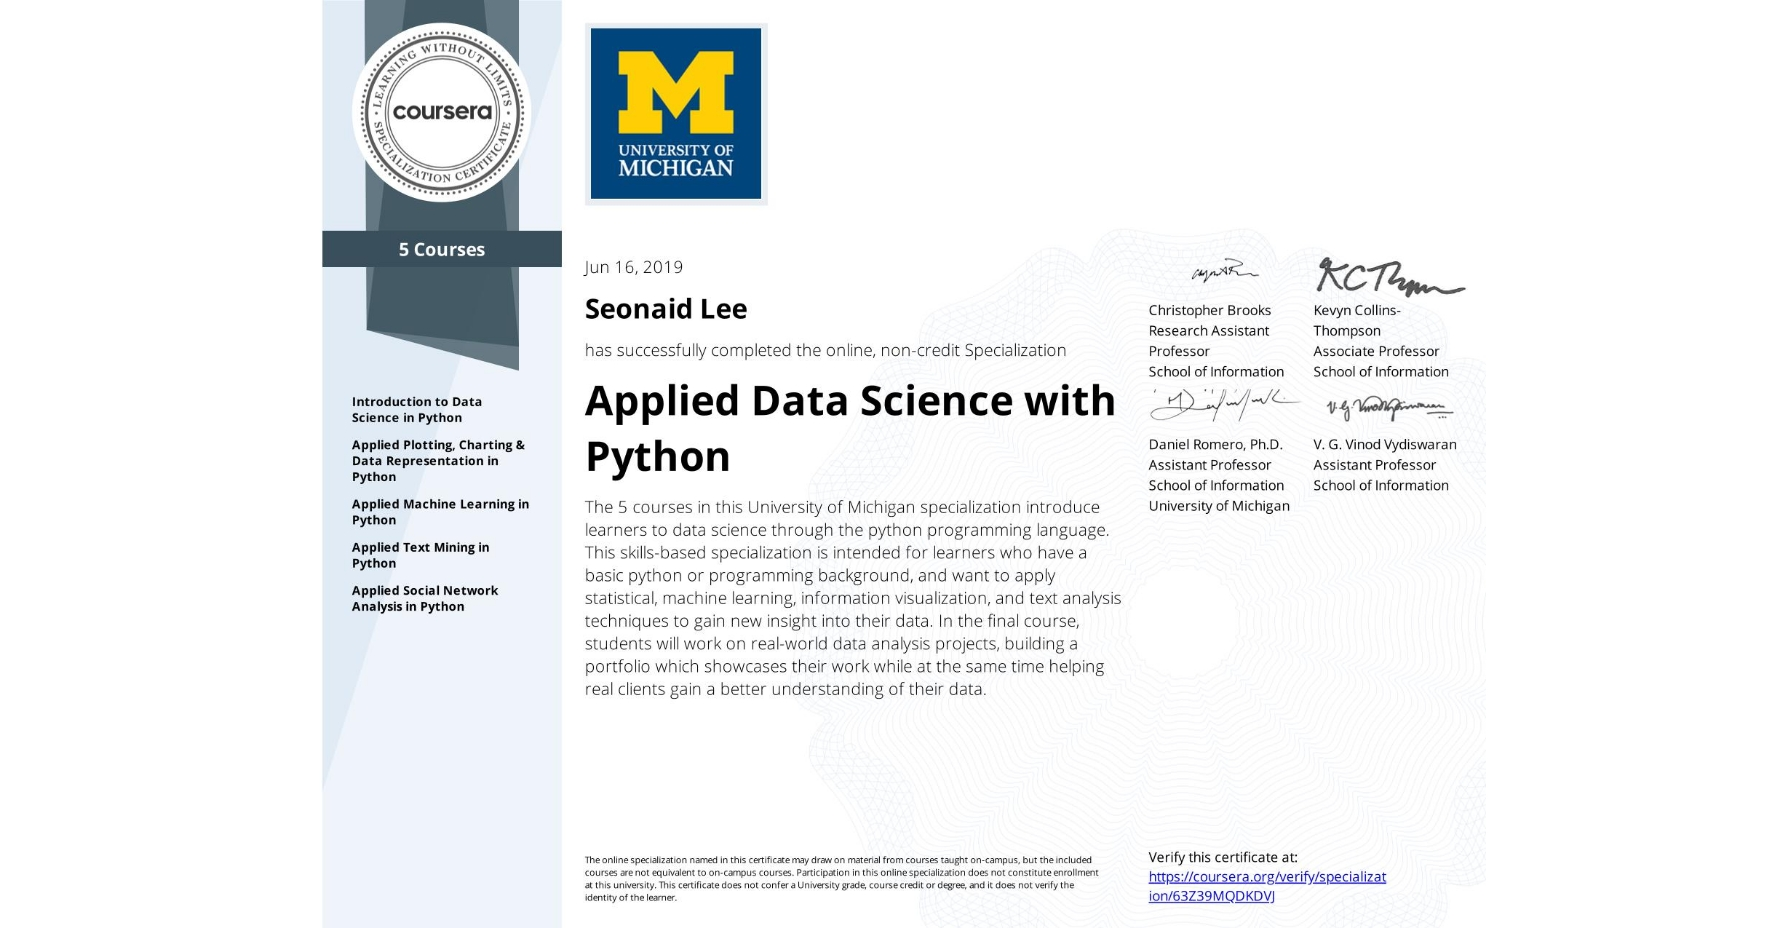 View certificate for Seonaid Lee, Applied Data Science with Python, offered through Coursera. The 5 courses in this University of Michigan specialization introduce learners to data science through the python programming language. This skills-based specialization is intended for learners who have a basic python or programming background, and want to apply statistical, machine learning, information visualization, and text analysis techniques to gain new insight into their data. In the final course, students will work on real-world data analysis projects, building a portfolio which showcases their work while at the same time helping real clients gain a better understanding of their data.